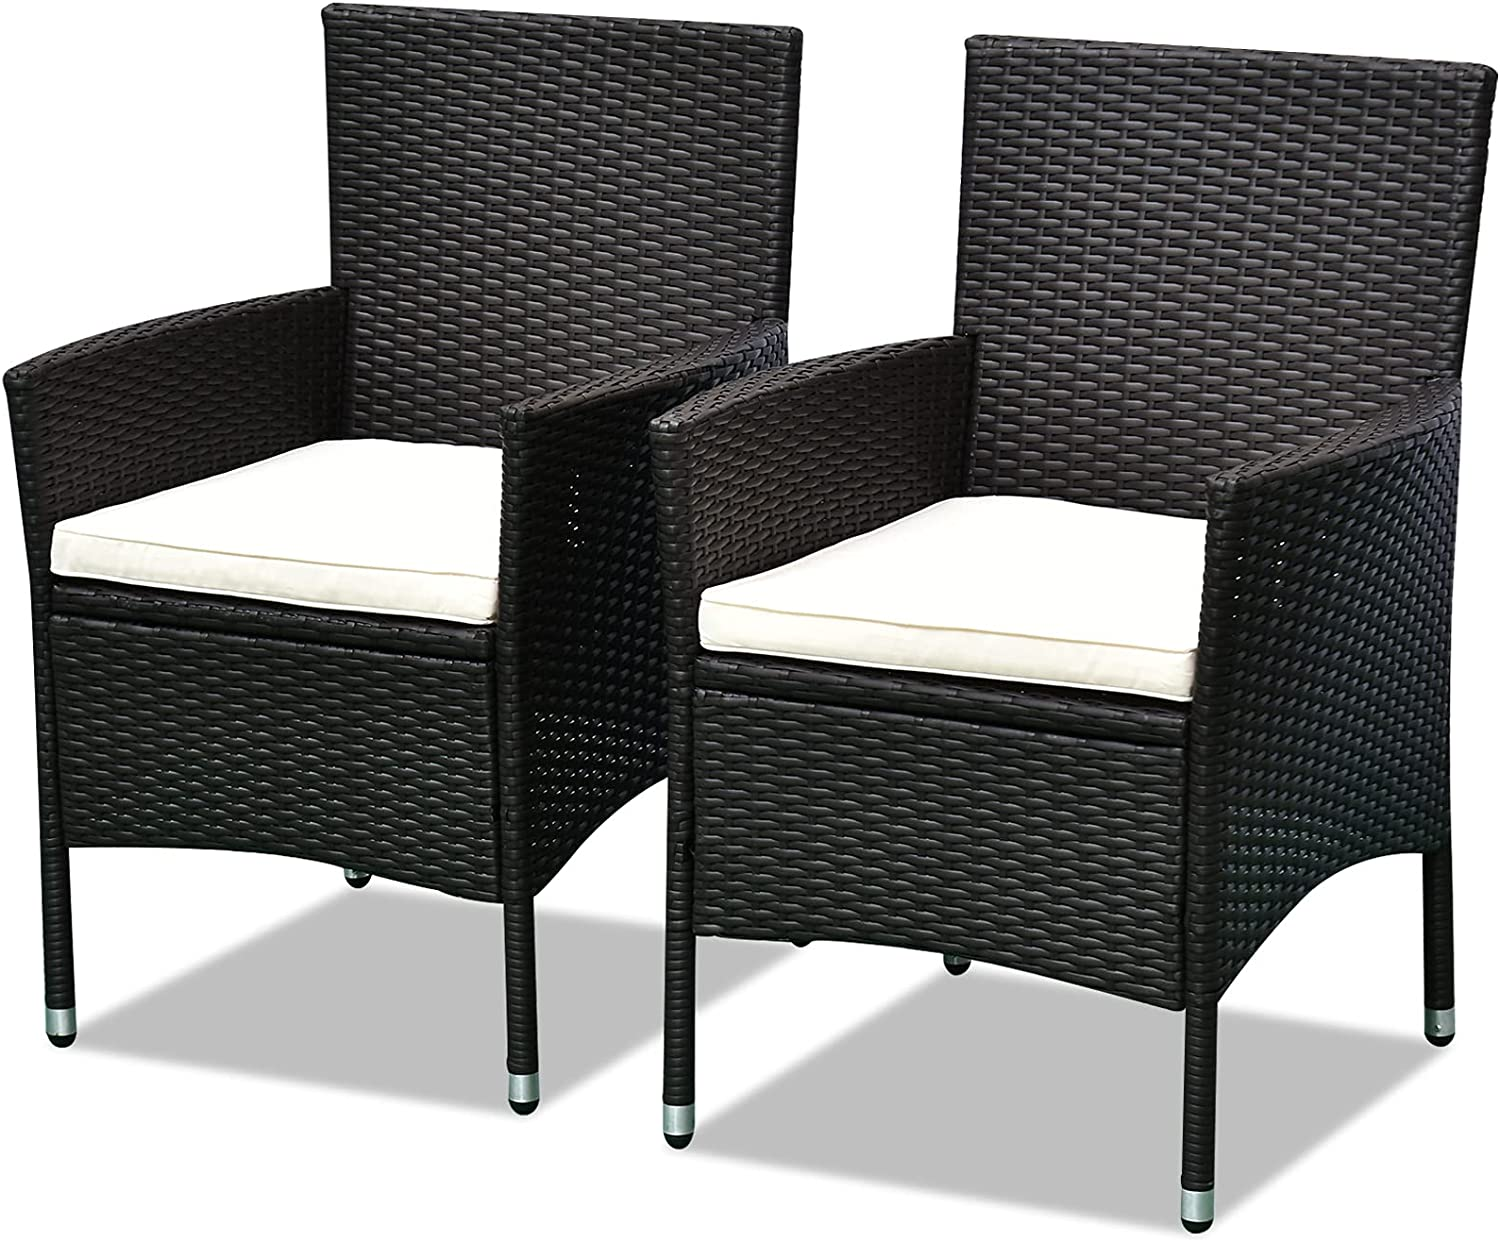 Outsunny 2 PCS Rattan New item Wicker Max 79% OFF Dining Chairs Ant Cushions with and